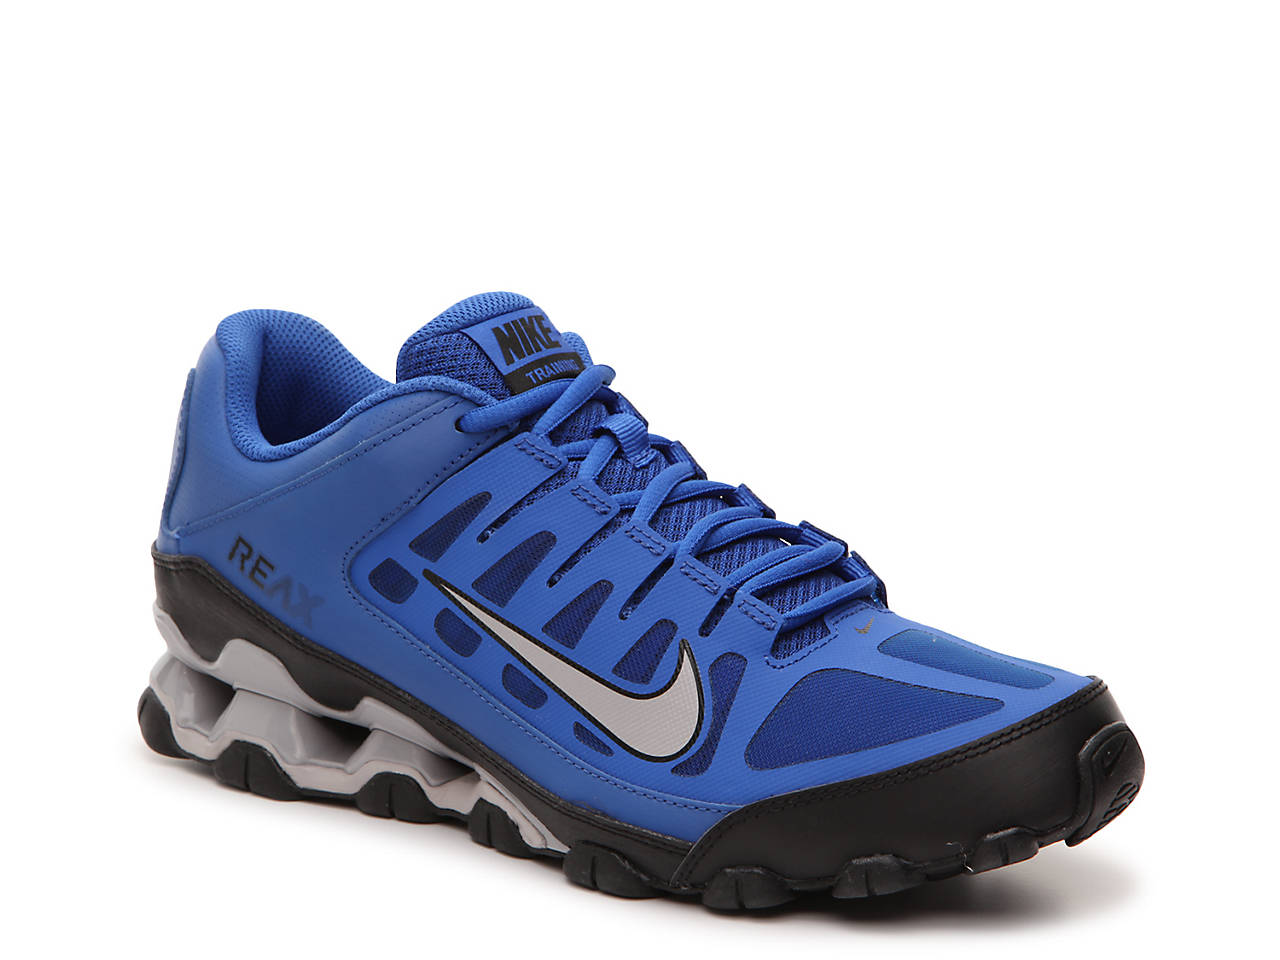 4925d1ff2b Nike Reax 8 TR Training Shoe - Men's Men's Shoes | DSW